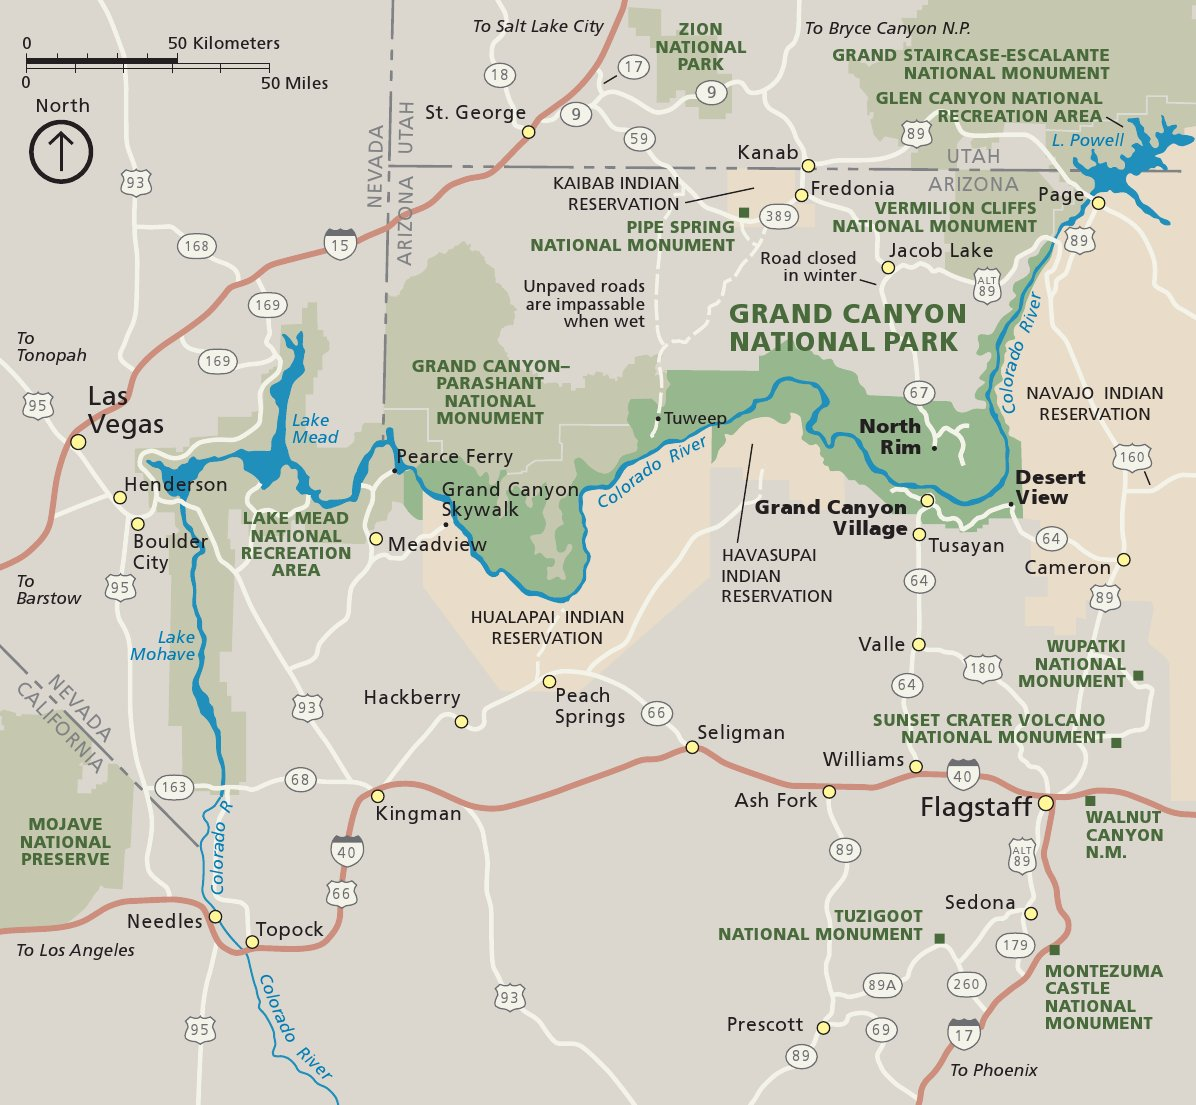 FileNPS Grandcanyonregionalmapjpg Wikimedia Commons - Las vegas grand canyon map